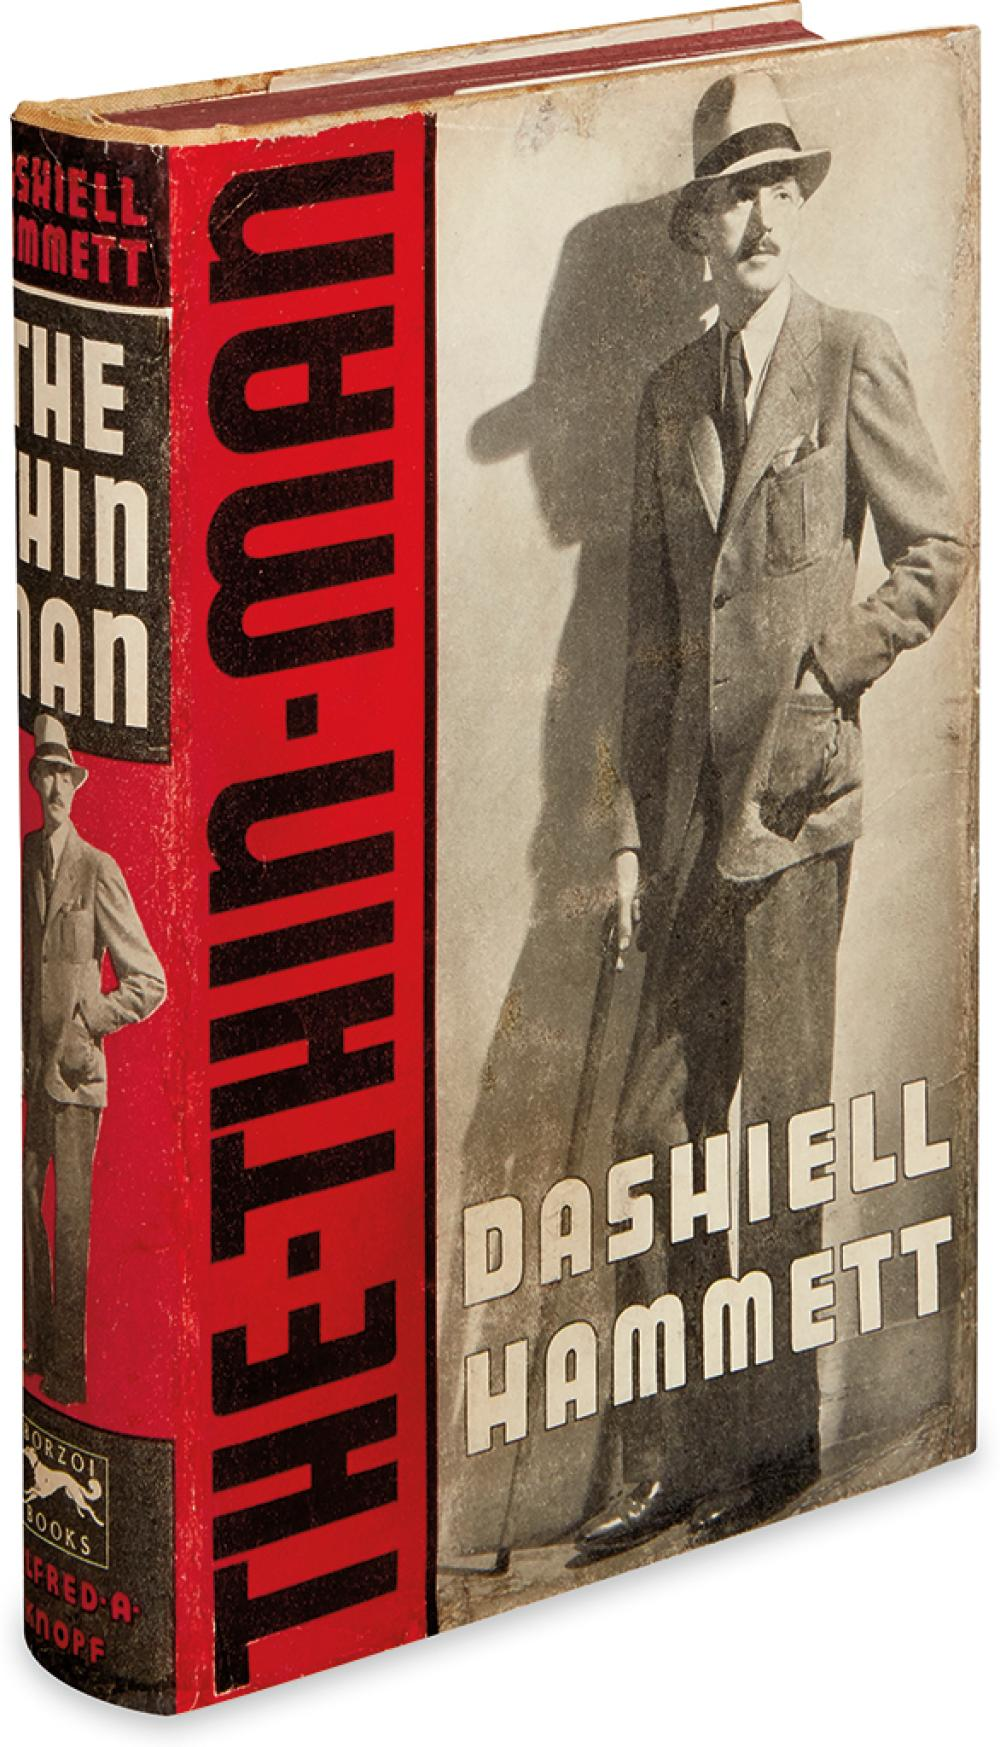 HAMMETT, DASHIELL. The Thin Man.